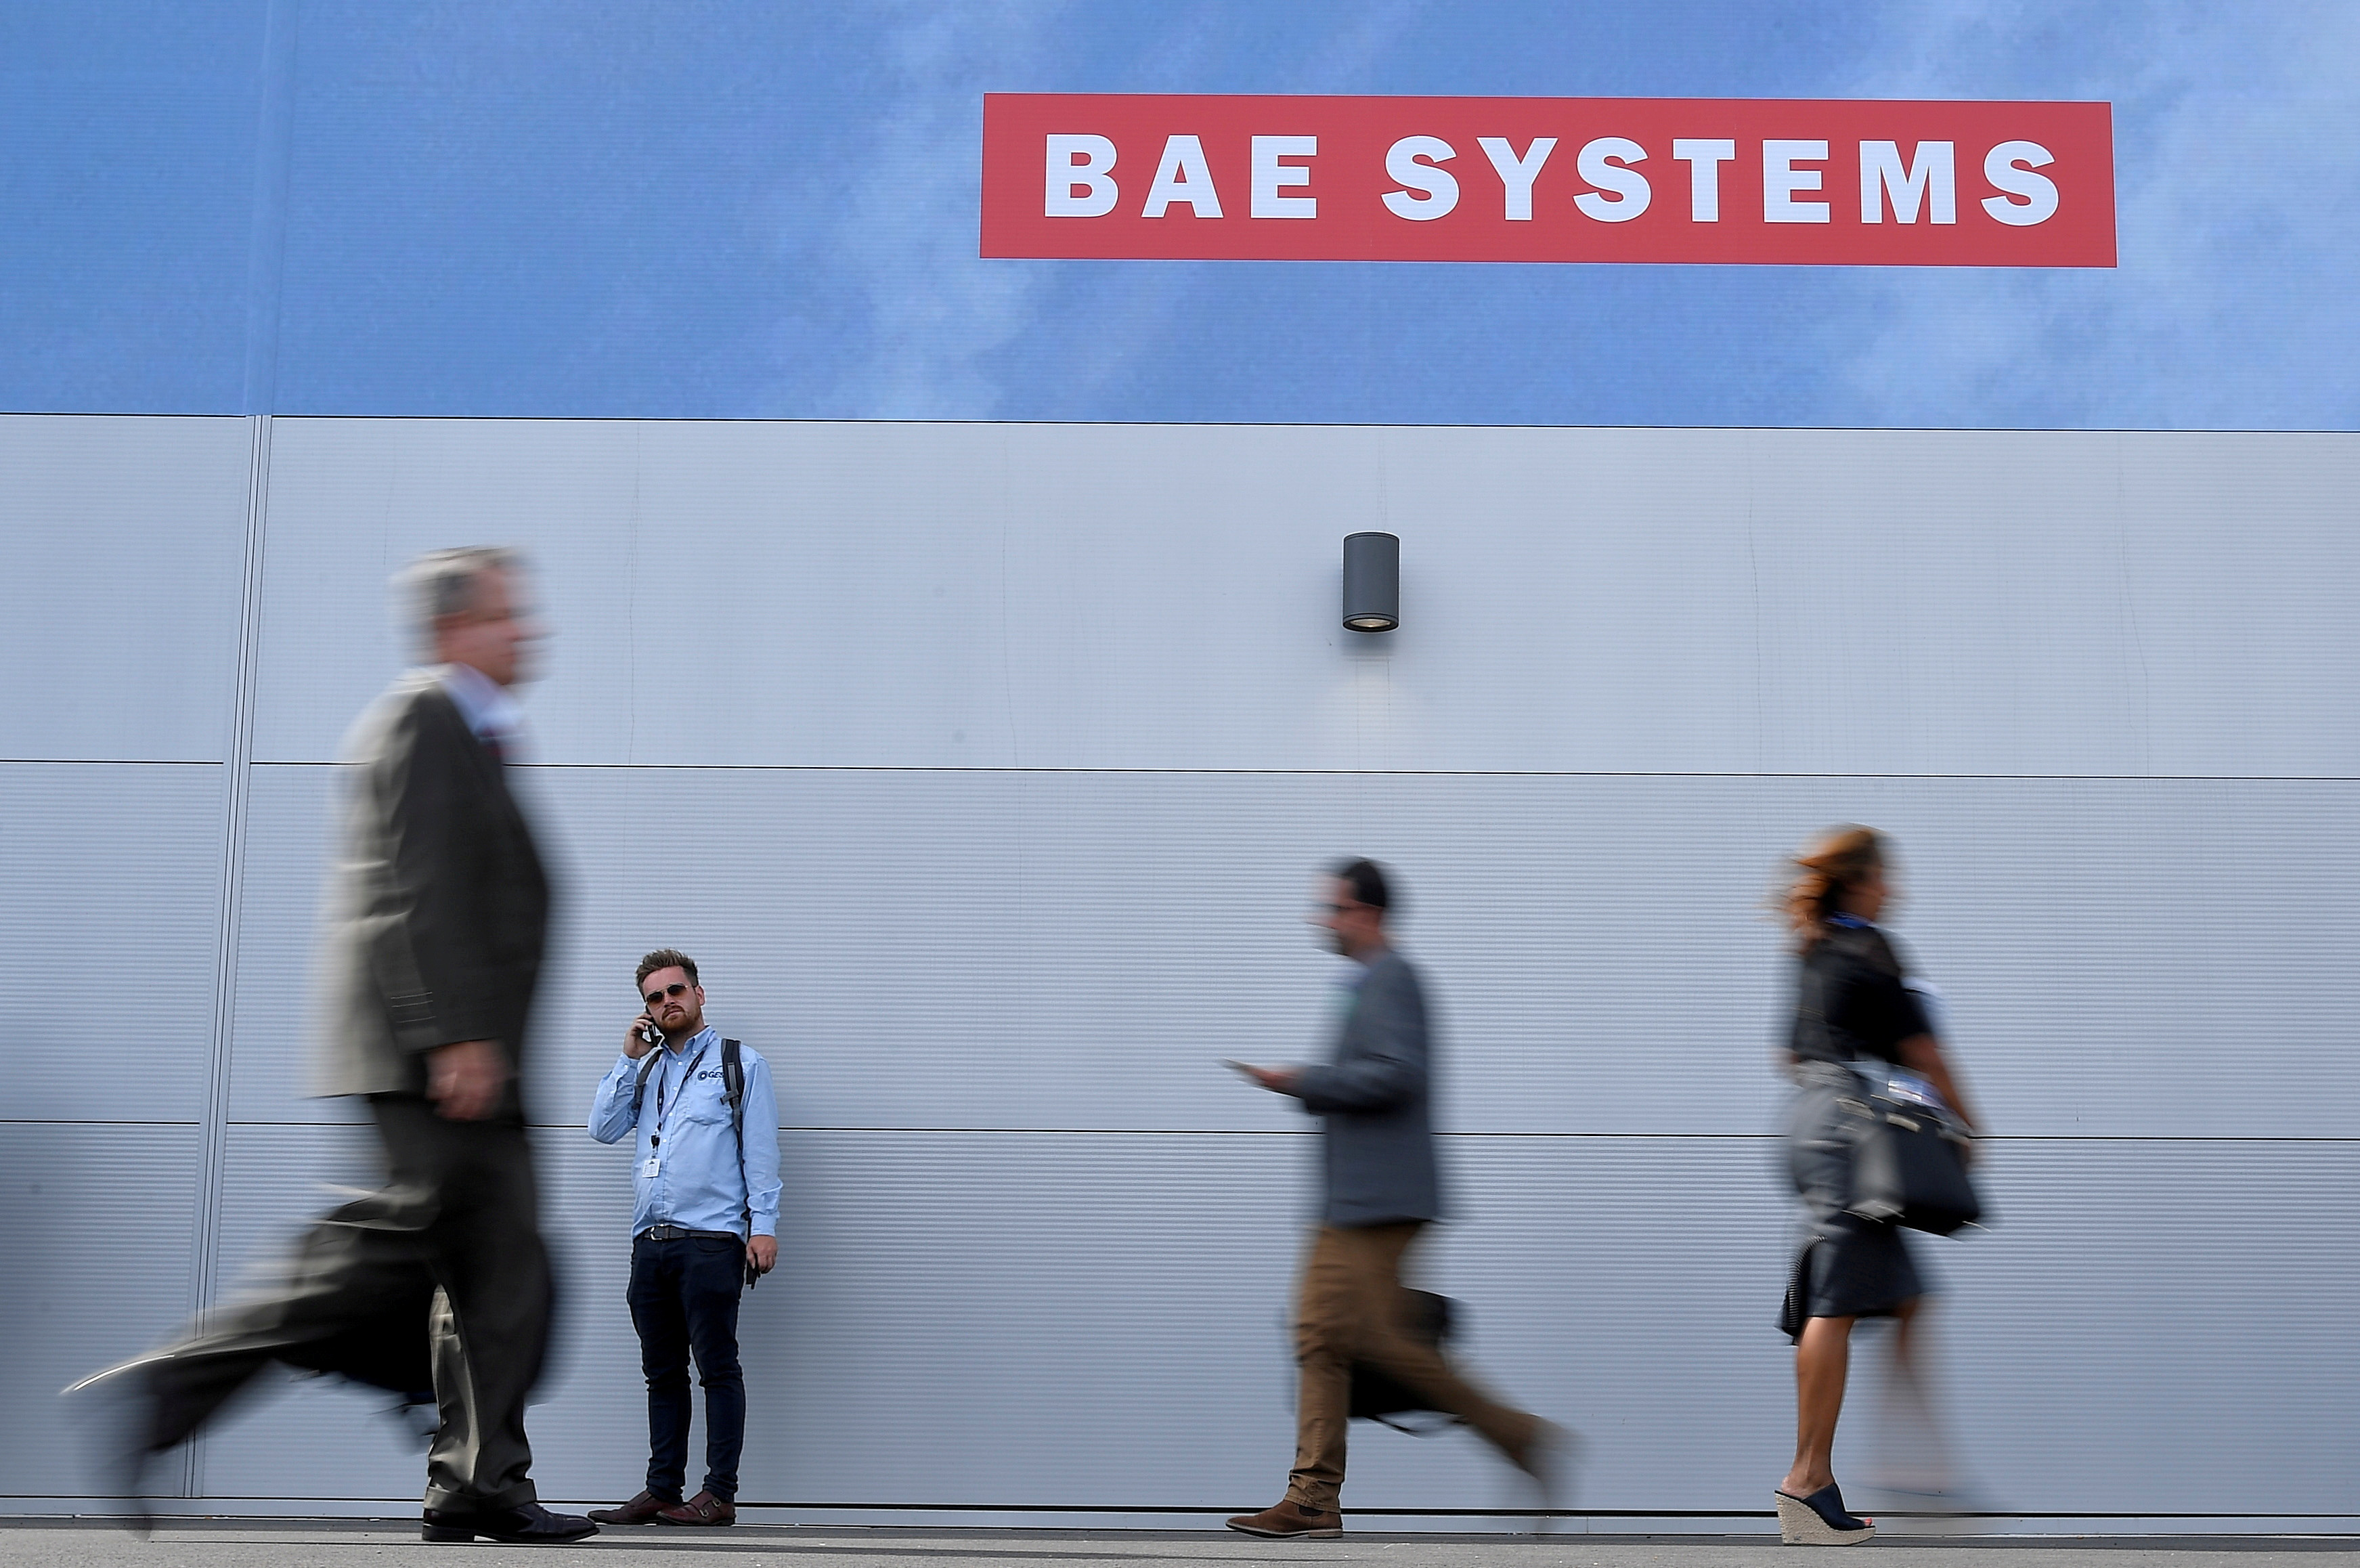 Trade visitors walk past an advertisement for BAE Systems at Farnborough International Airshow in Farnborough, Britain, July 17, 2018. REUTERS/Toby Melville/File Photo